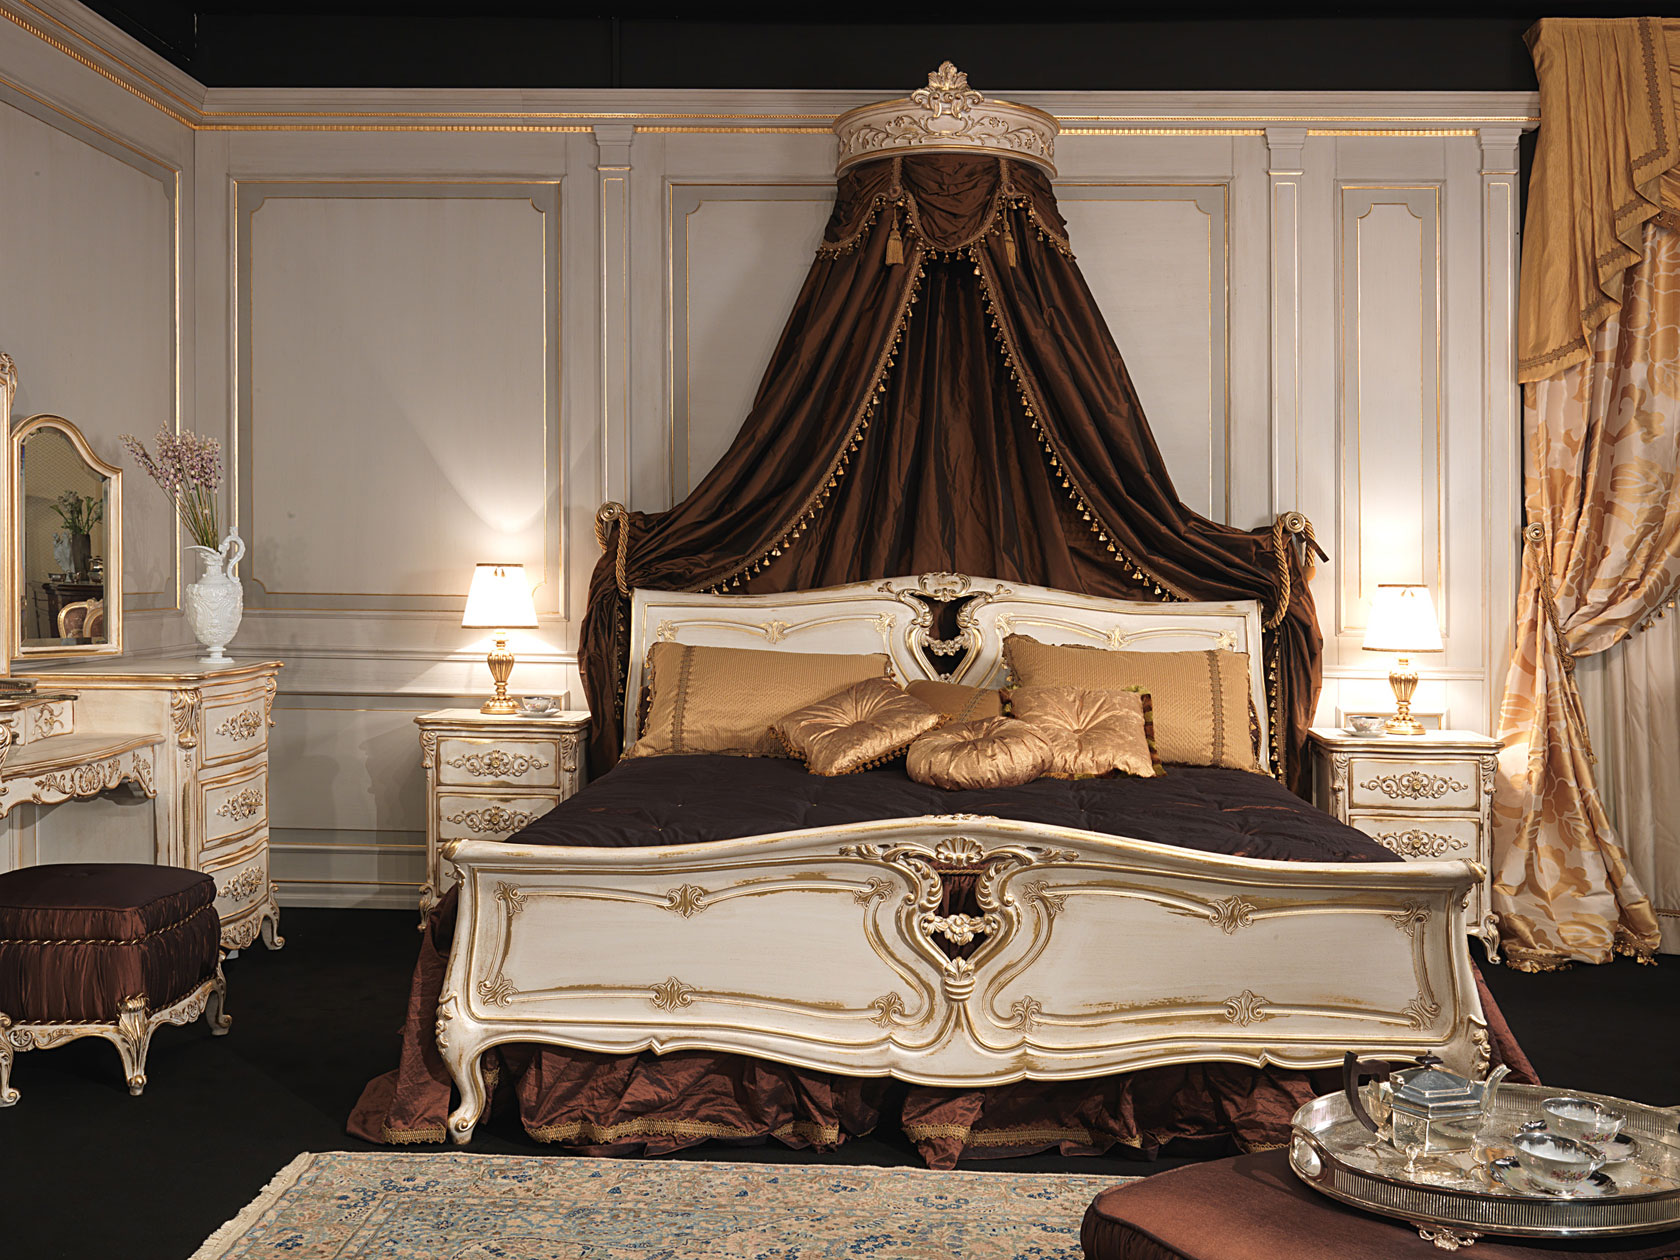 Classic Louis Xvi Bedroom Carved Wood Bed With Wall